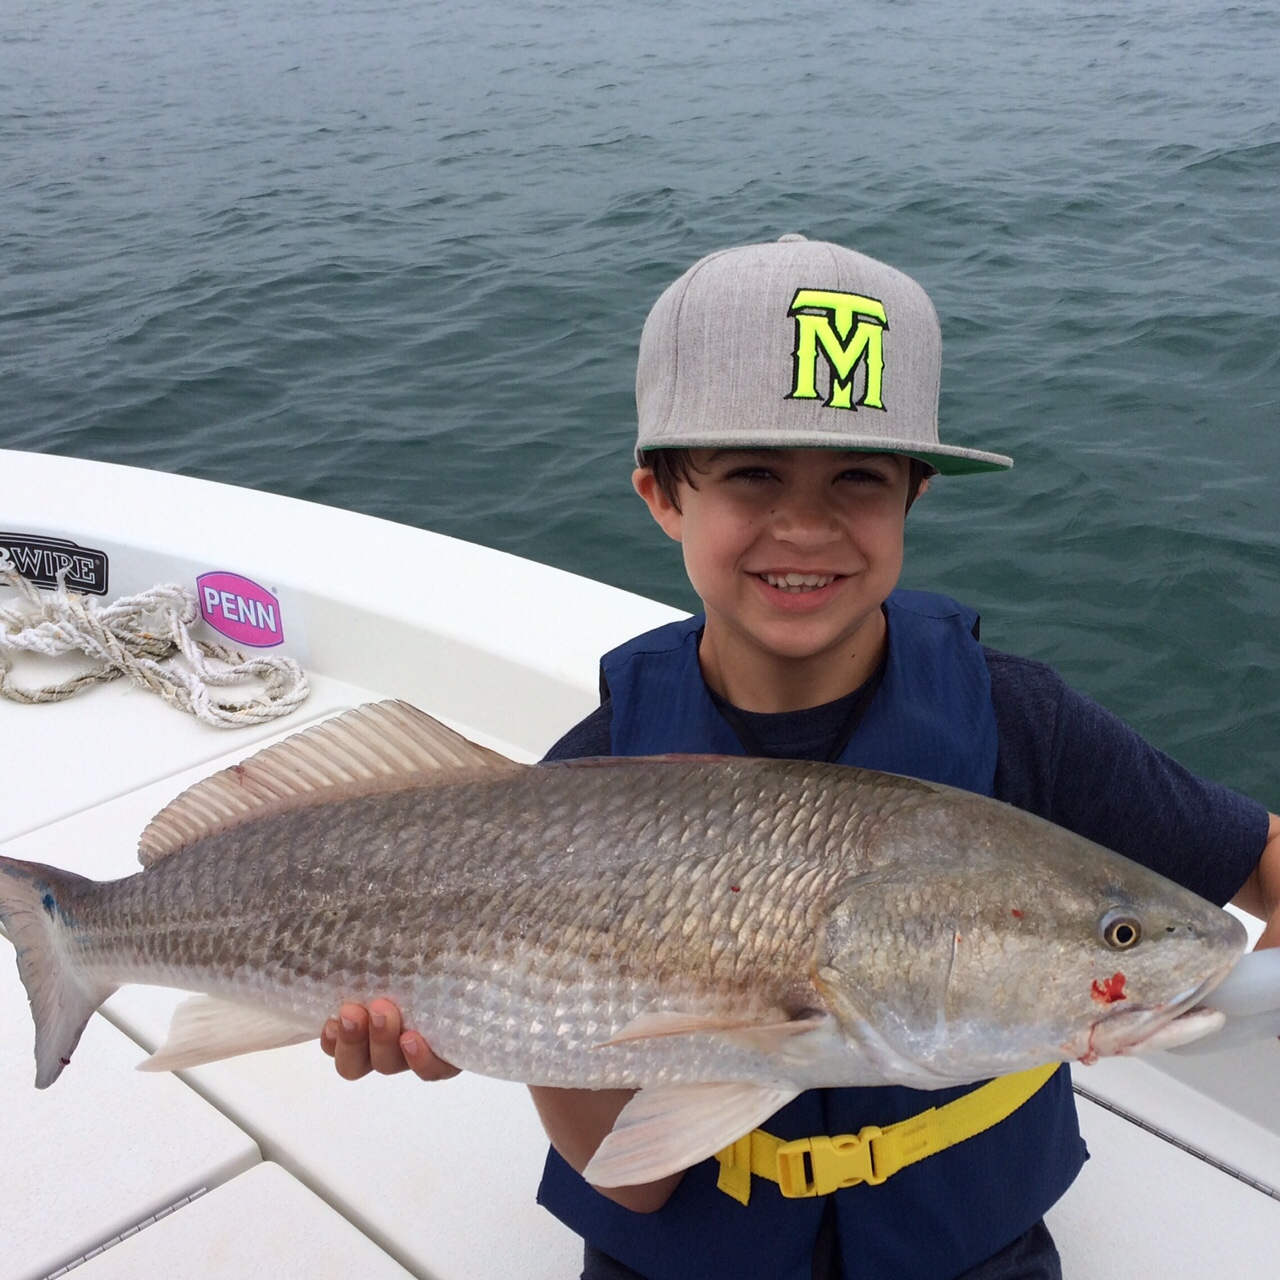 Fishing report archive wrightsville beach nc area for Fishing weather report